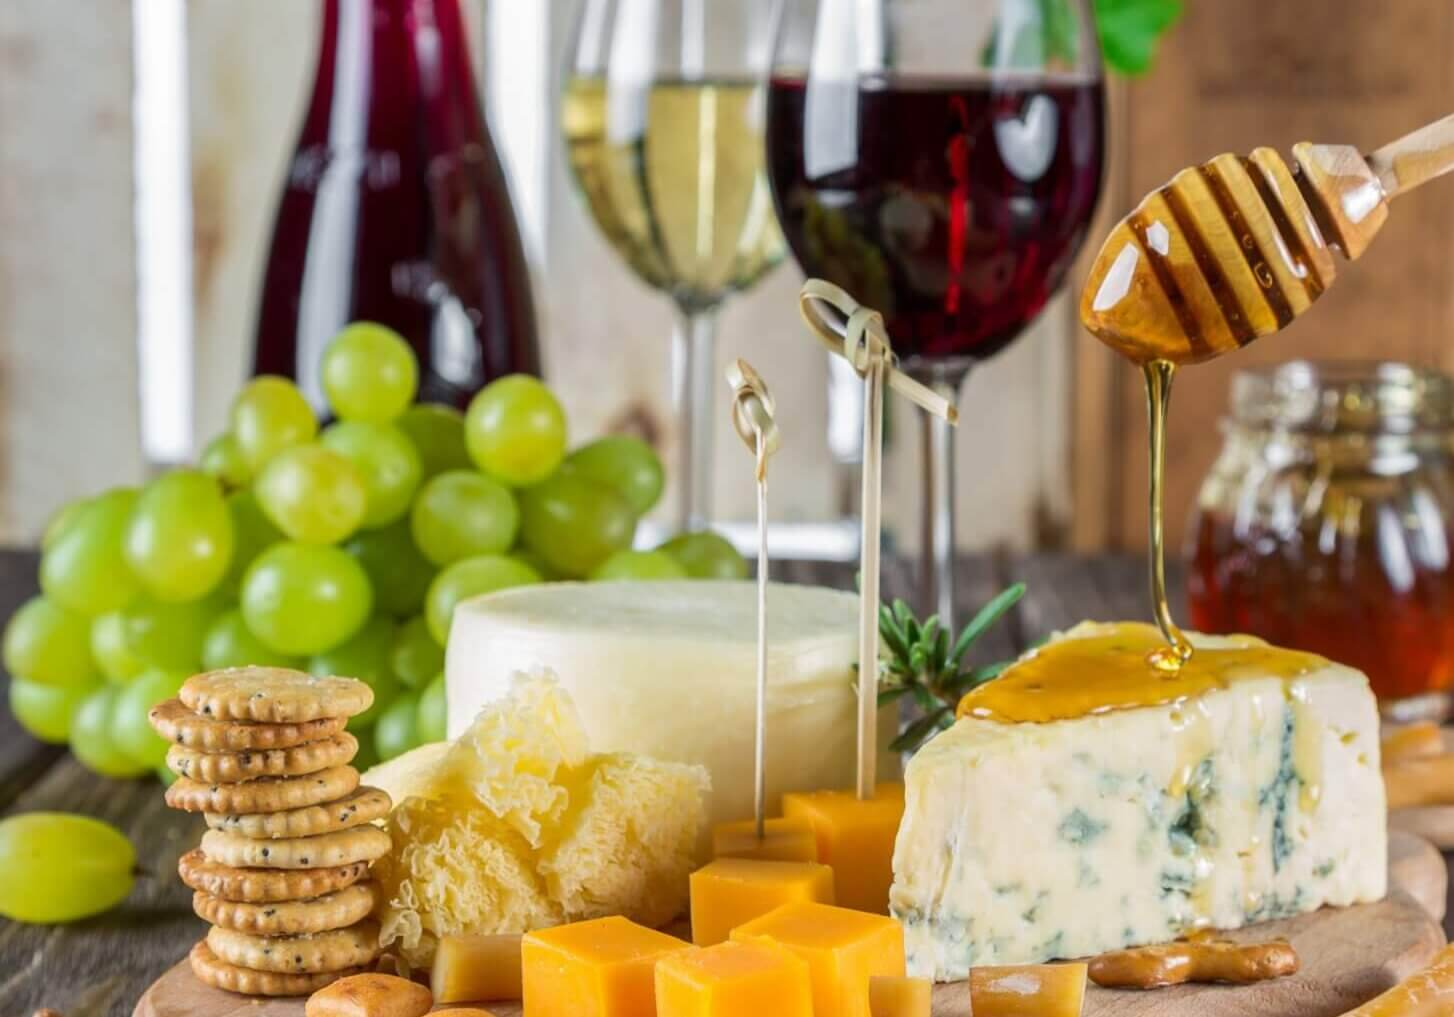 close-up-of-wine-and-fruits-248413